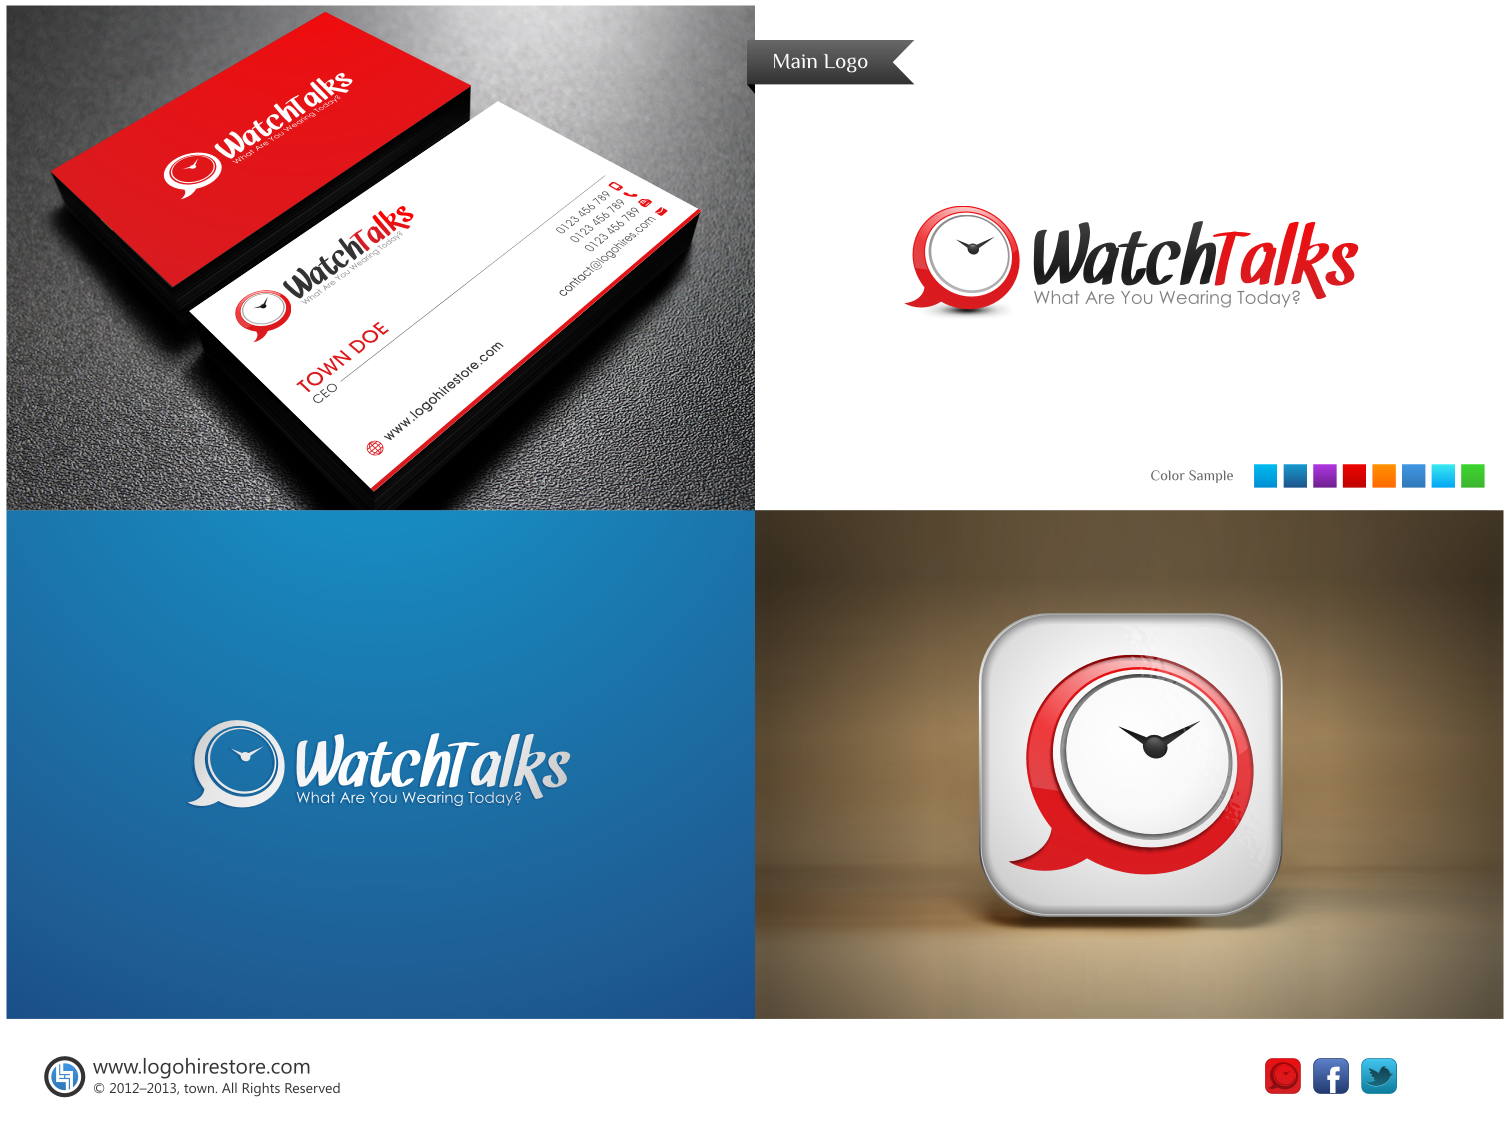 New logo wanted for Watch Talks